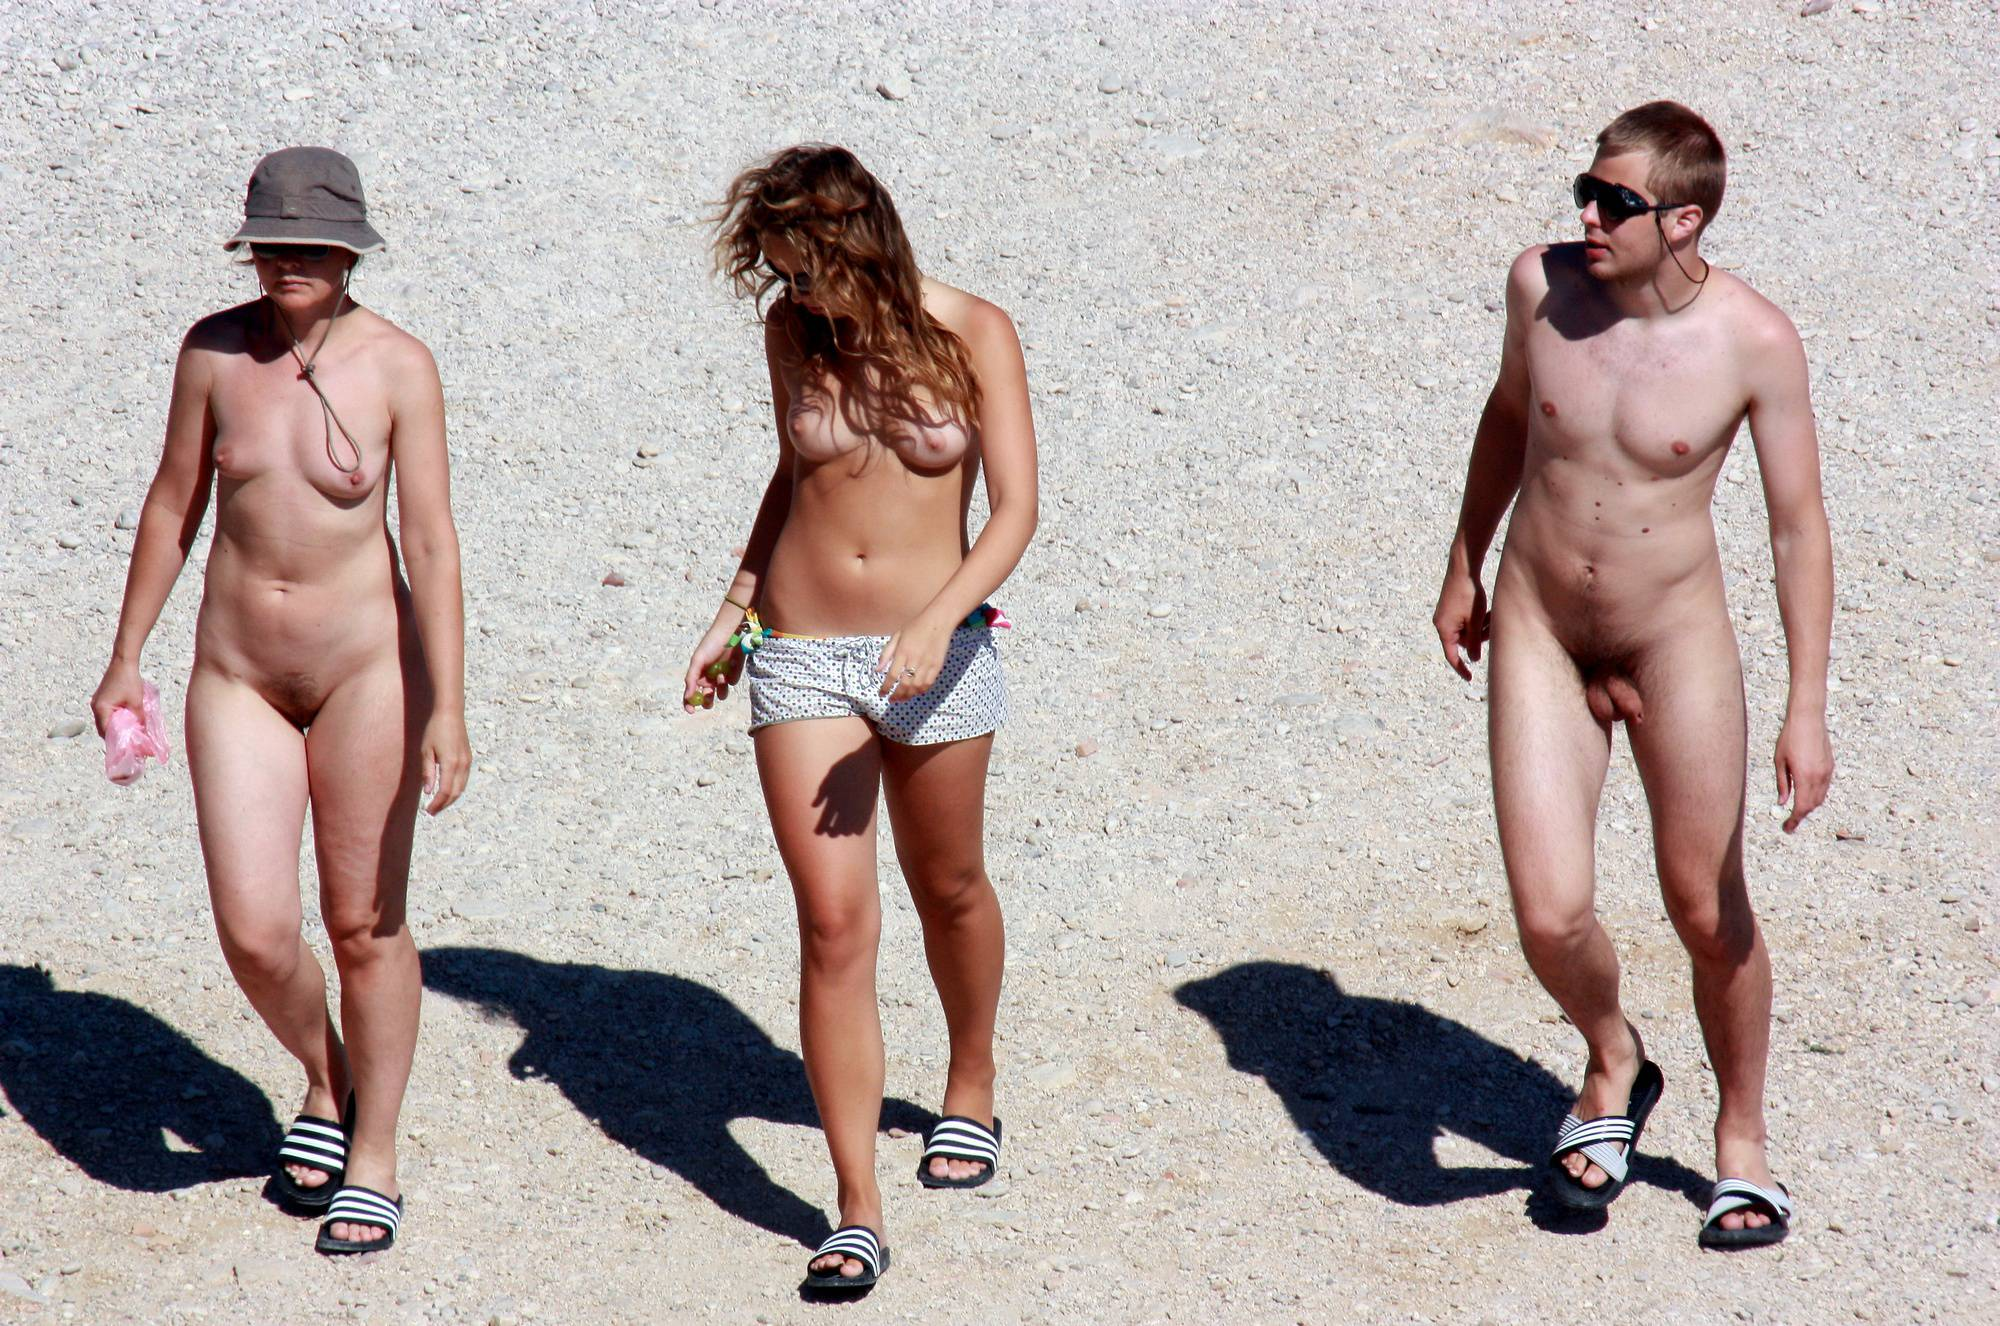 Nude and Topless Trio Walk - 2